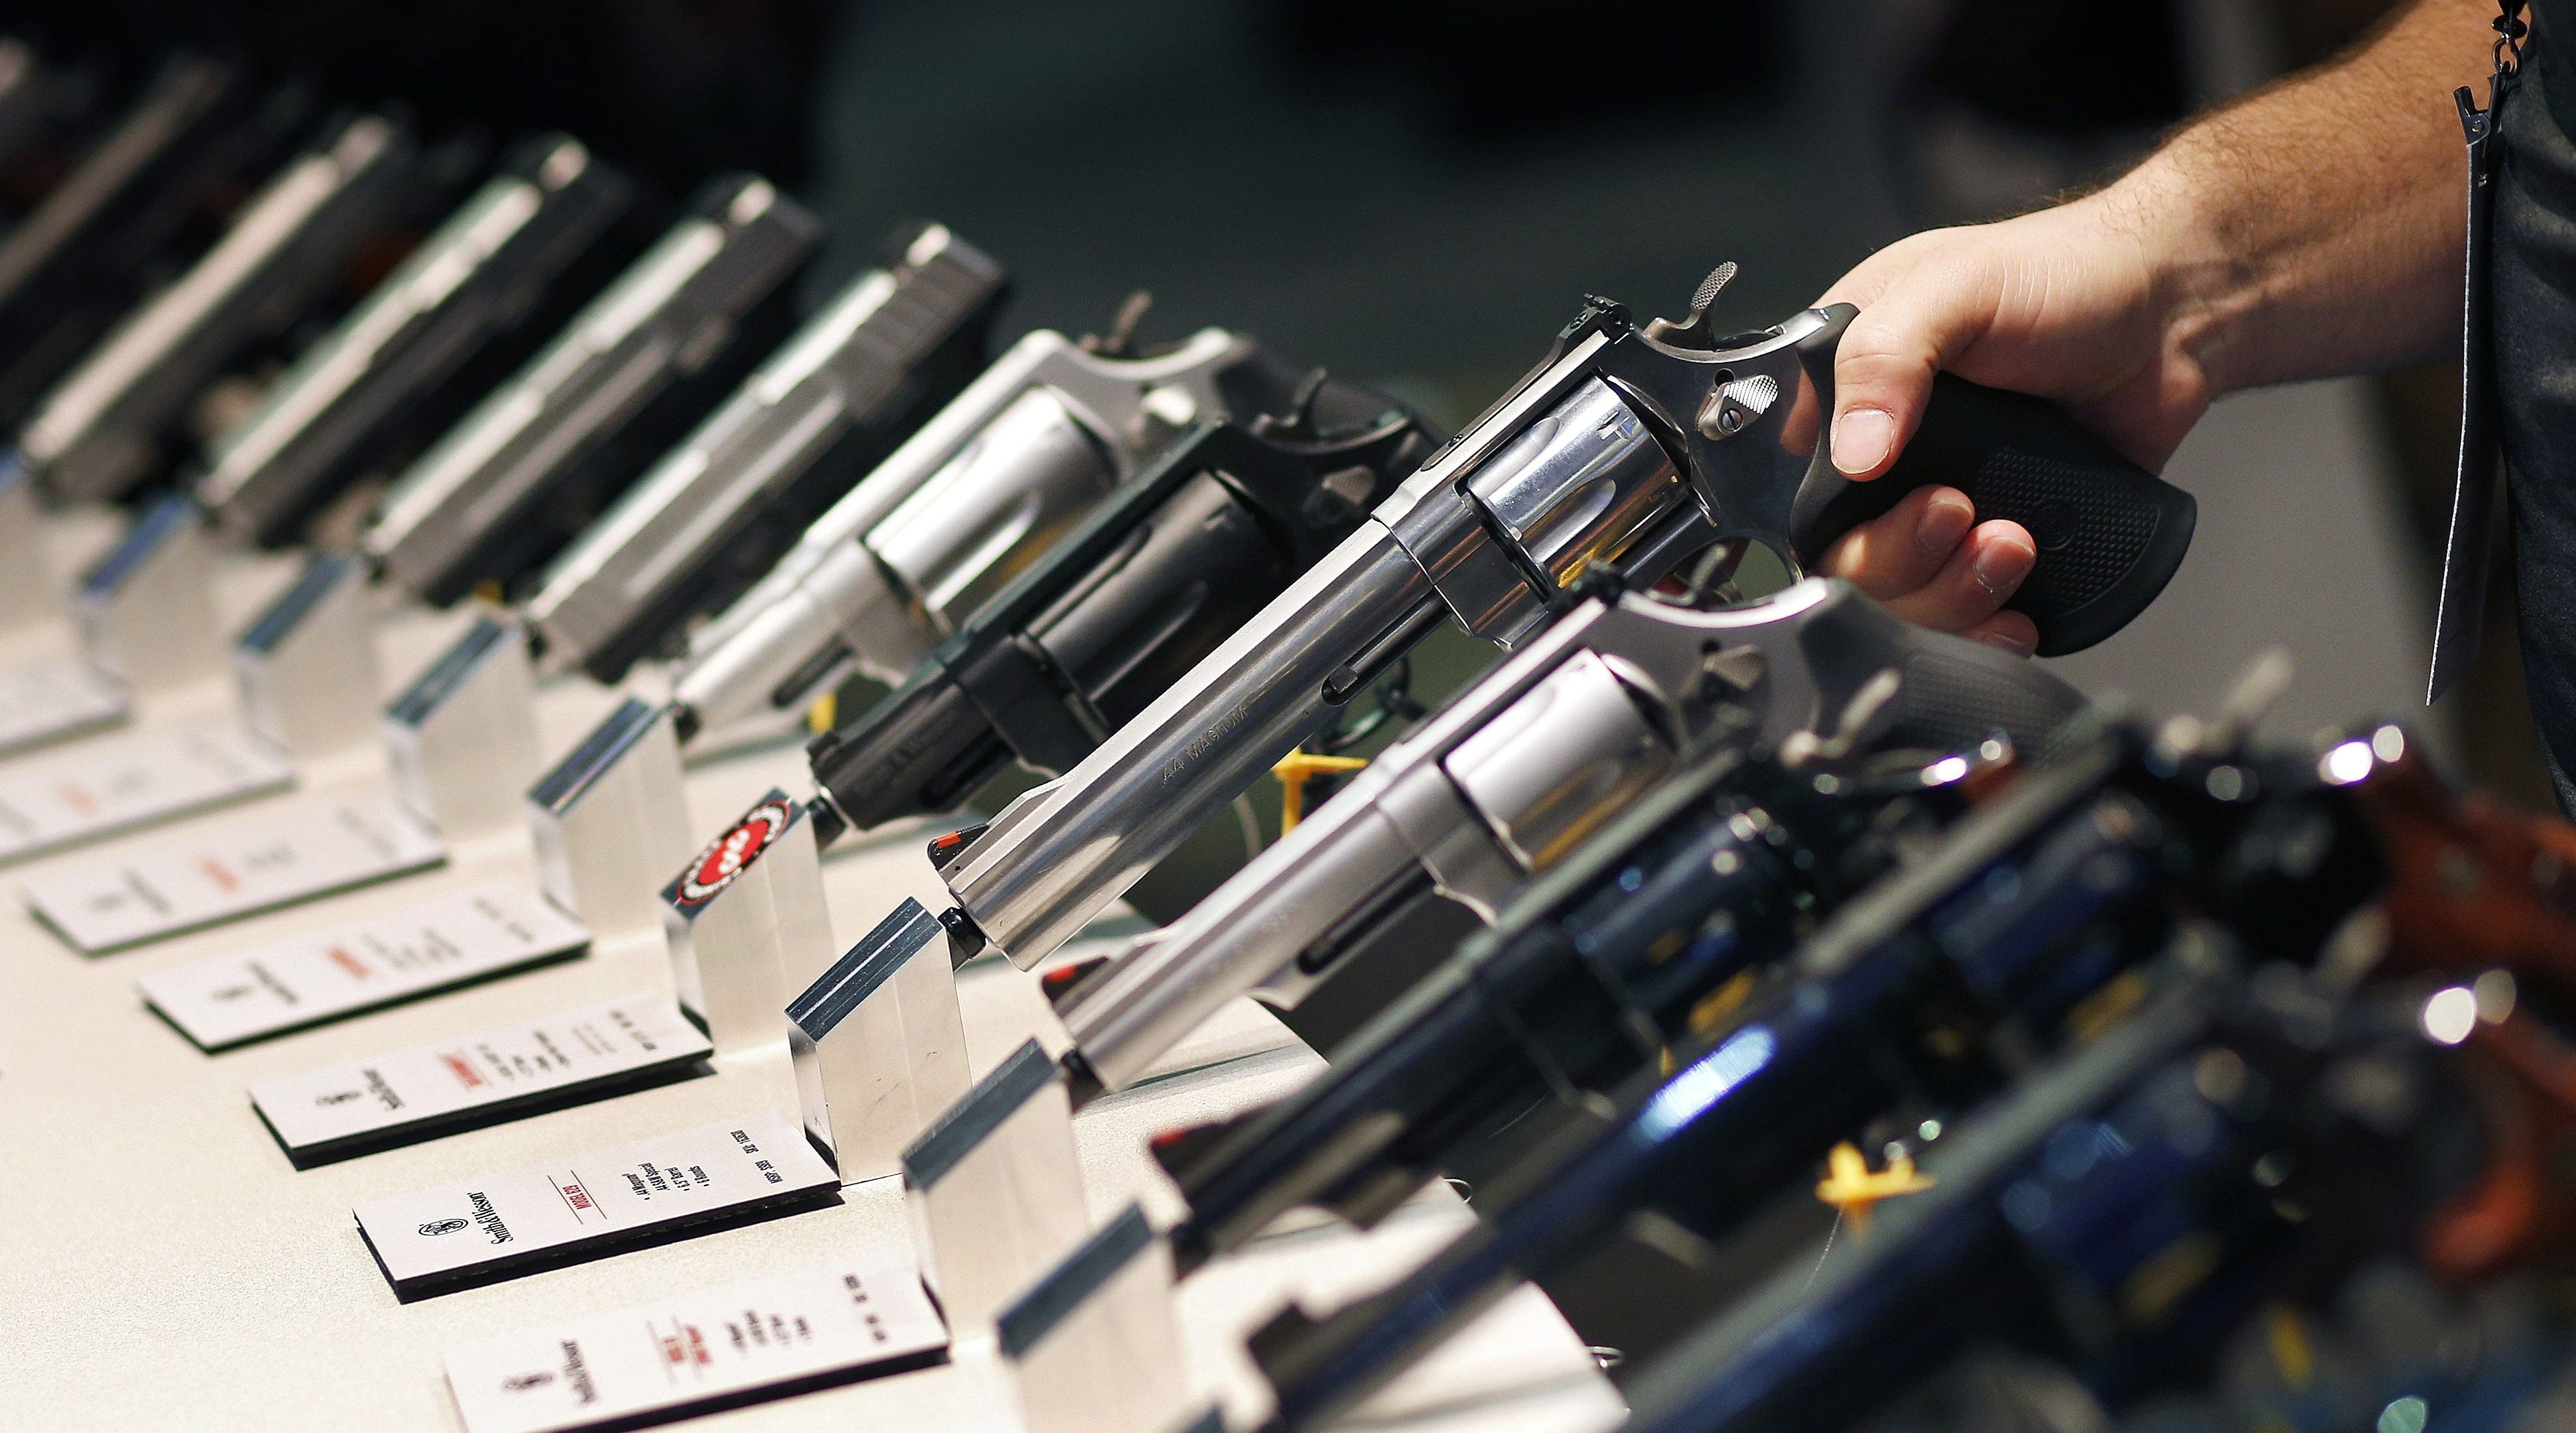 In this Jan. 19, 2016 file photo, handguns are displayed at the Smith & Wesson booth at the Shooting, Hunting and Outdoor Trade Show in Las Vegas. Nearly two-thirds of Americans expressed support for stricter gun laws, according to an Associated Press-GfK poll released Saturday, July 23, 2016. A majority of poll respondents oppose banning handguns.